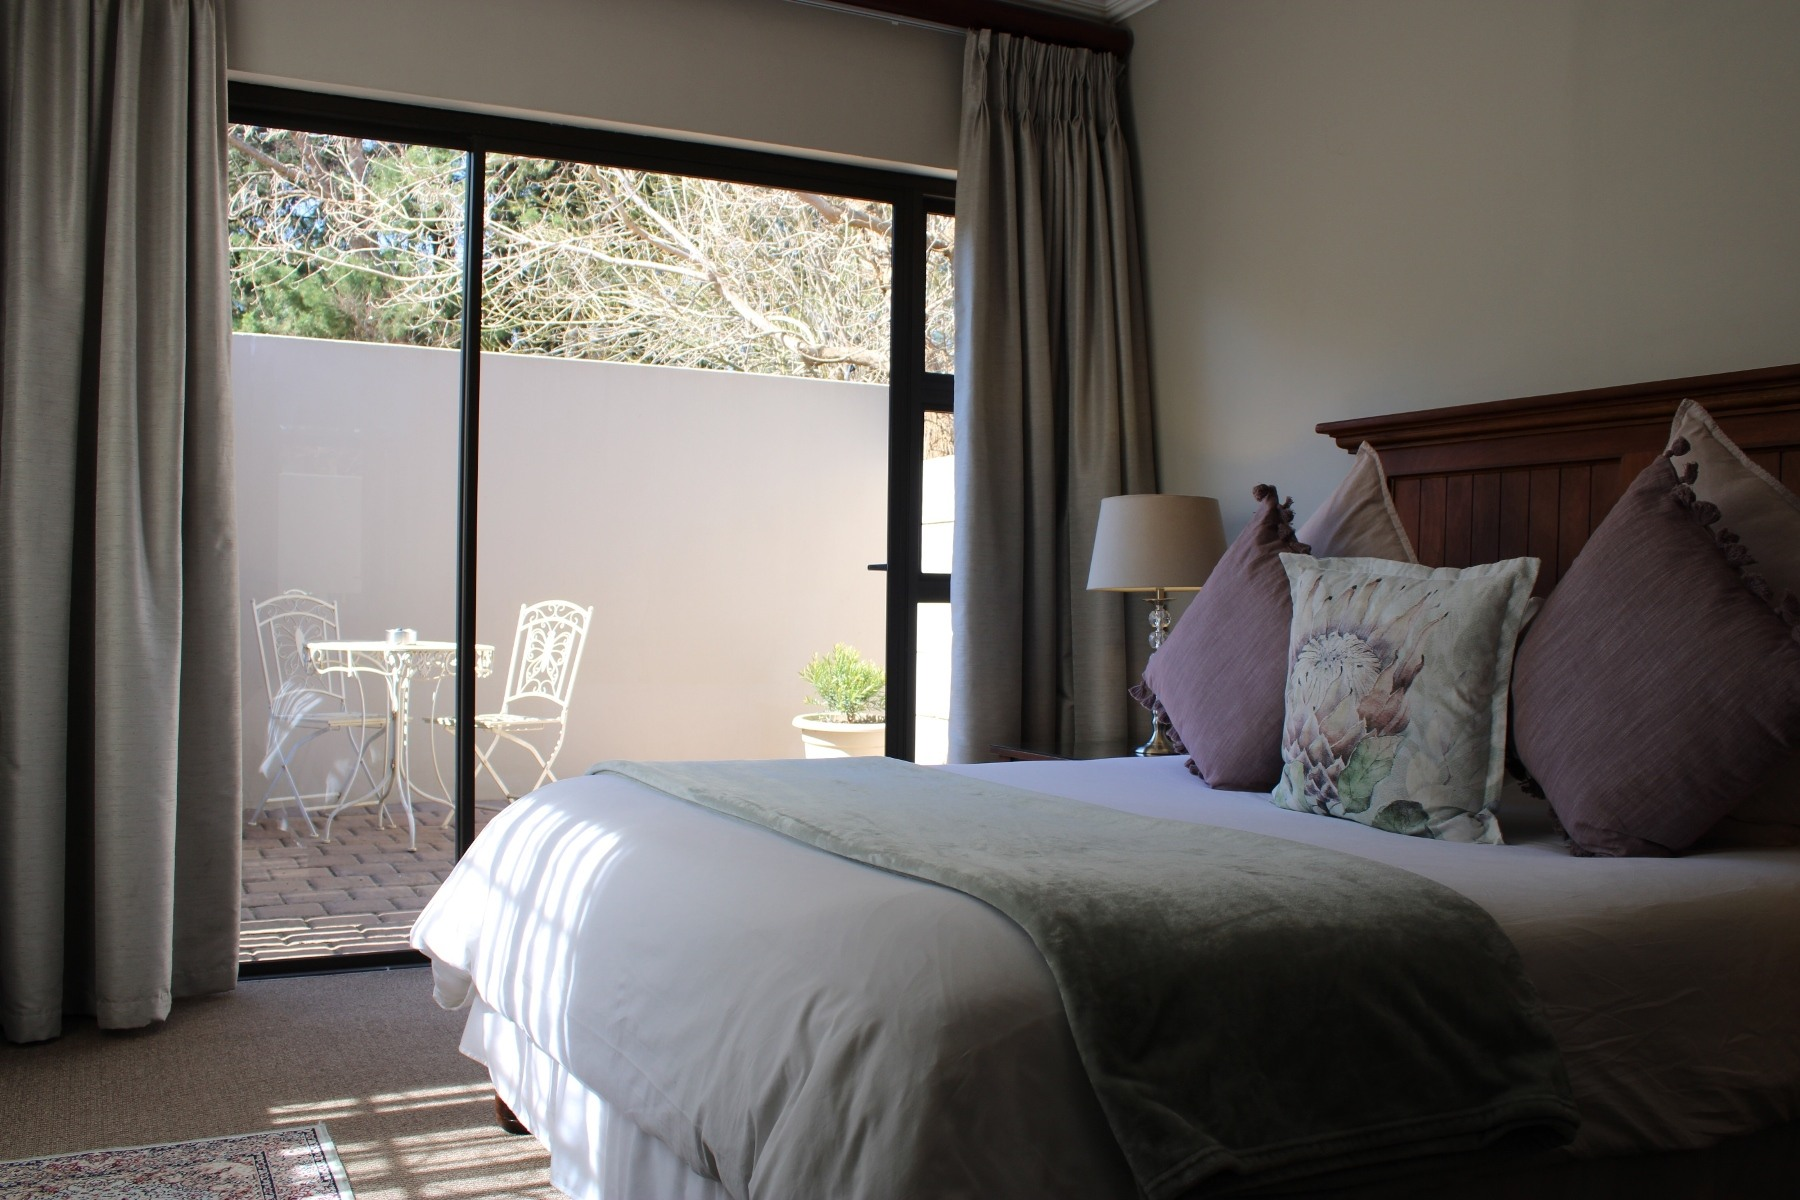 abiento-guesthouse-room6-9